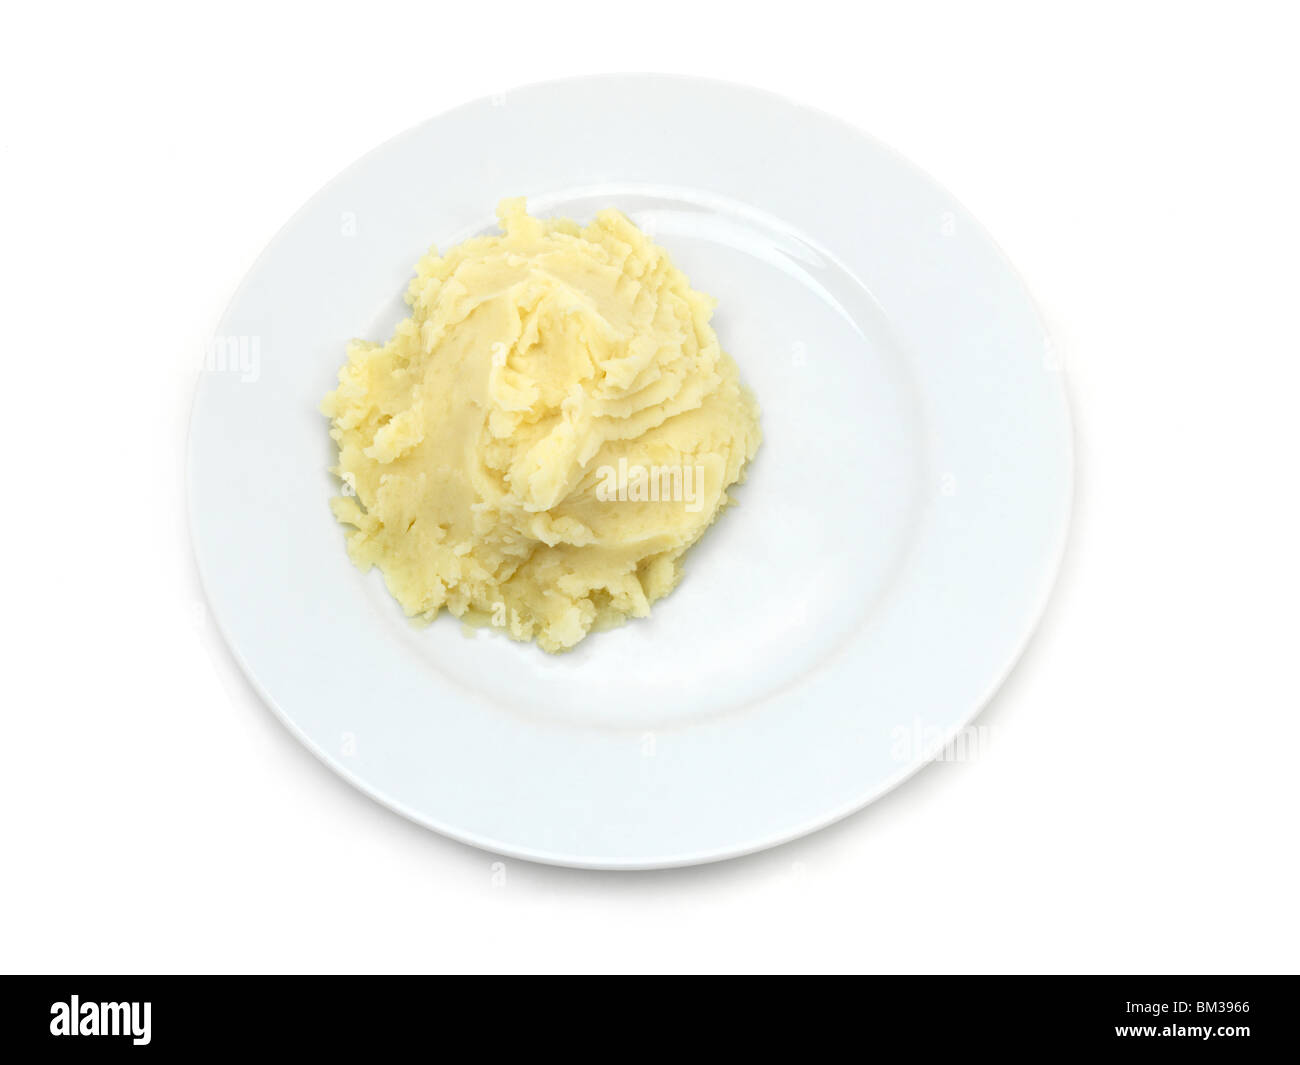 Plate Of Mashed Potato - Stock Image